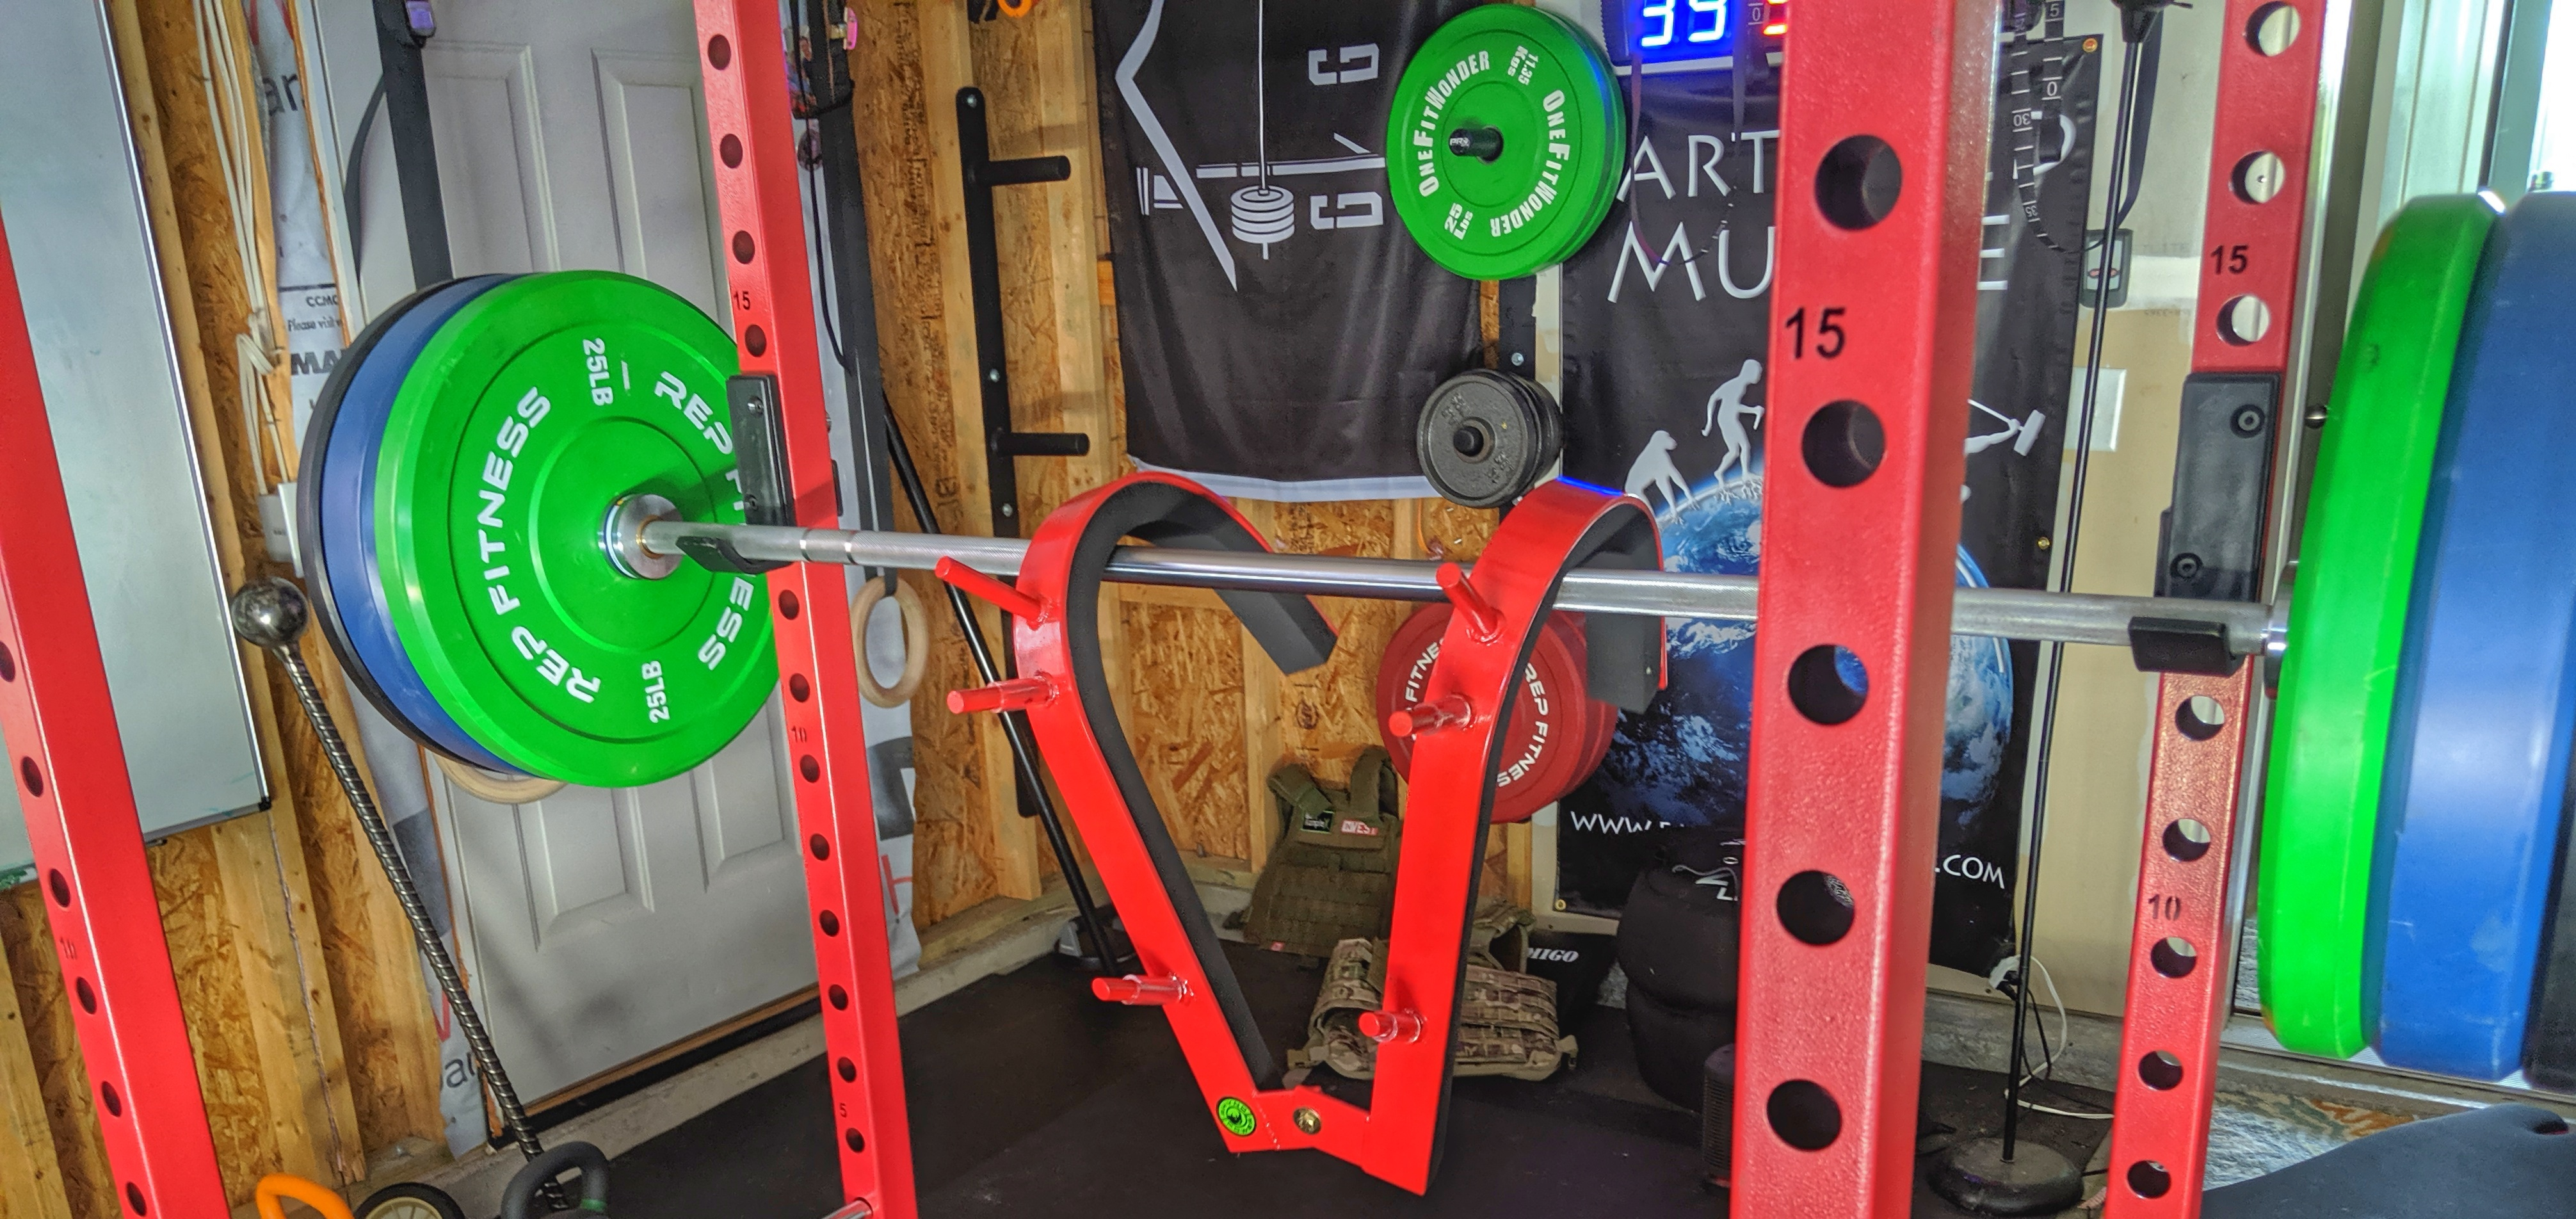 U garage gym experiment